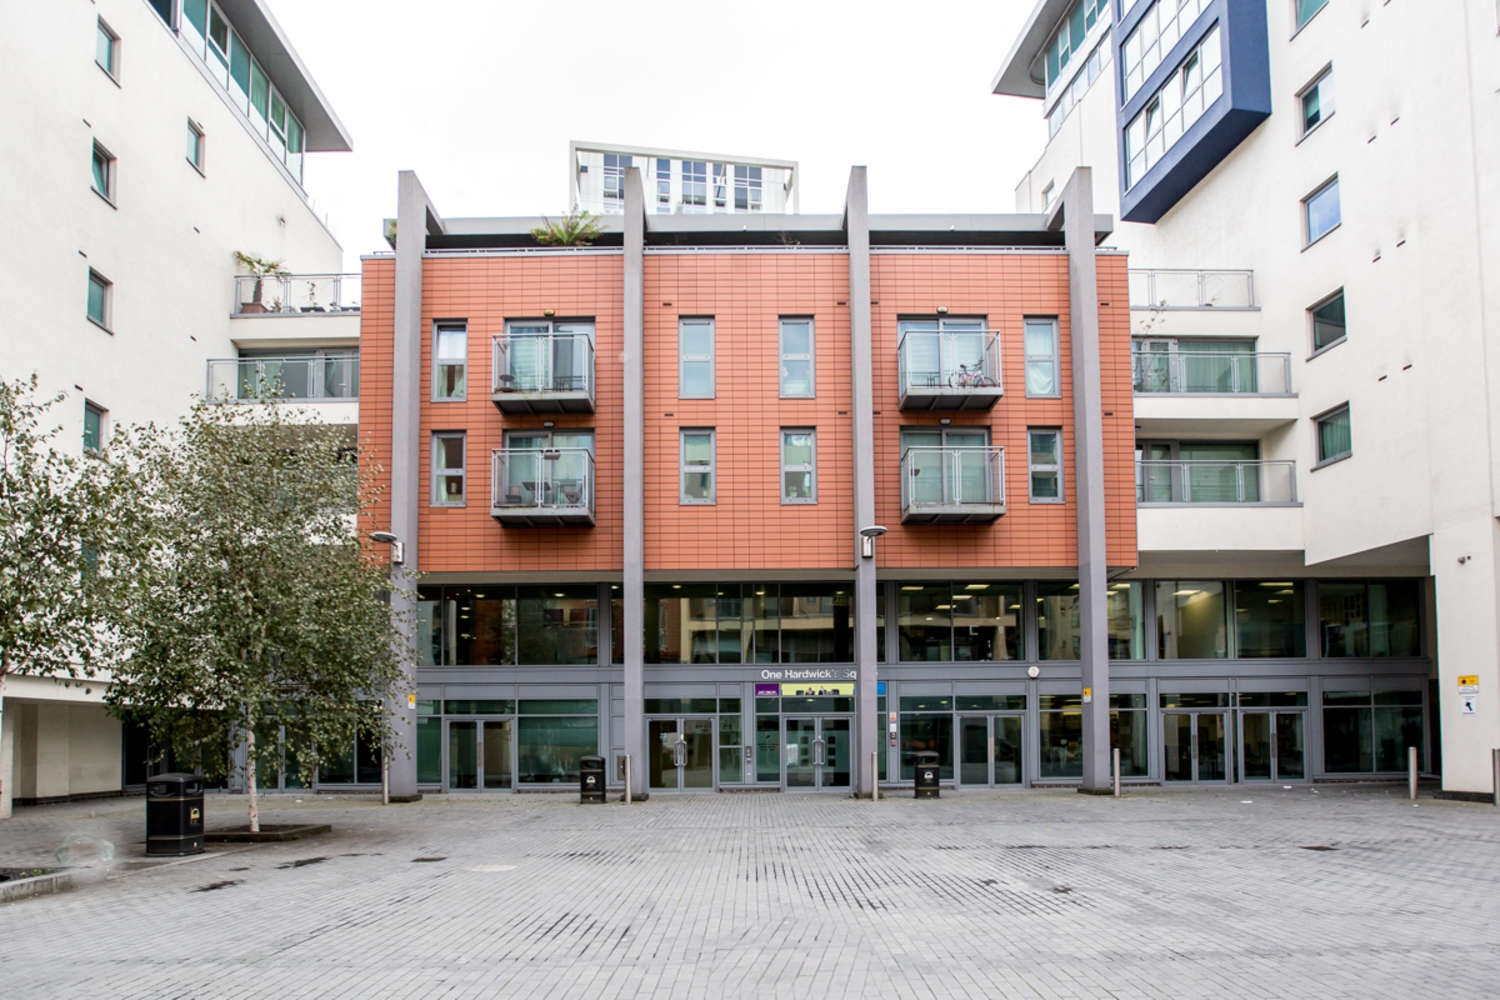 Serviced office London, SW18 4AW - 1-9 Hardwicks Square  - 23387